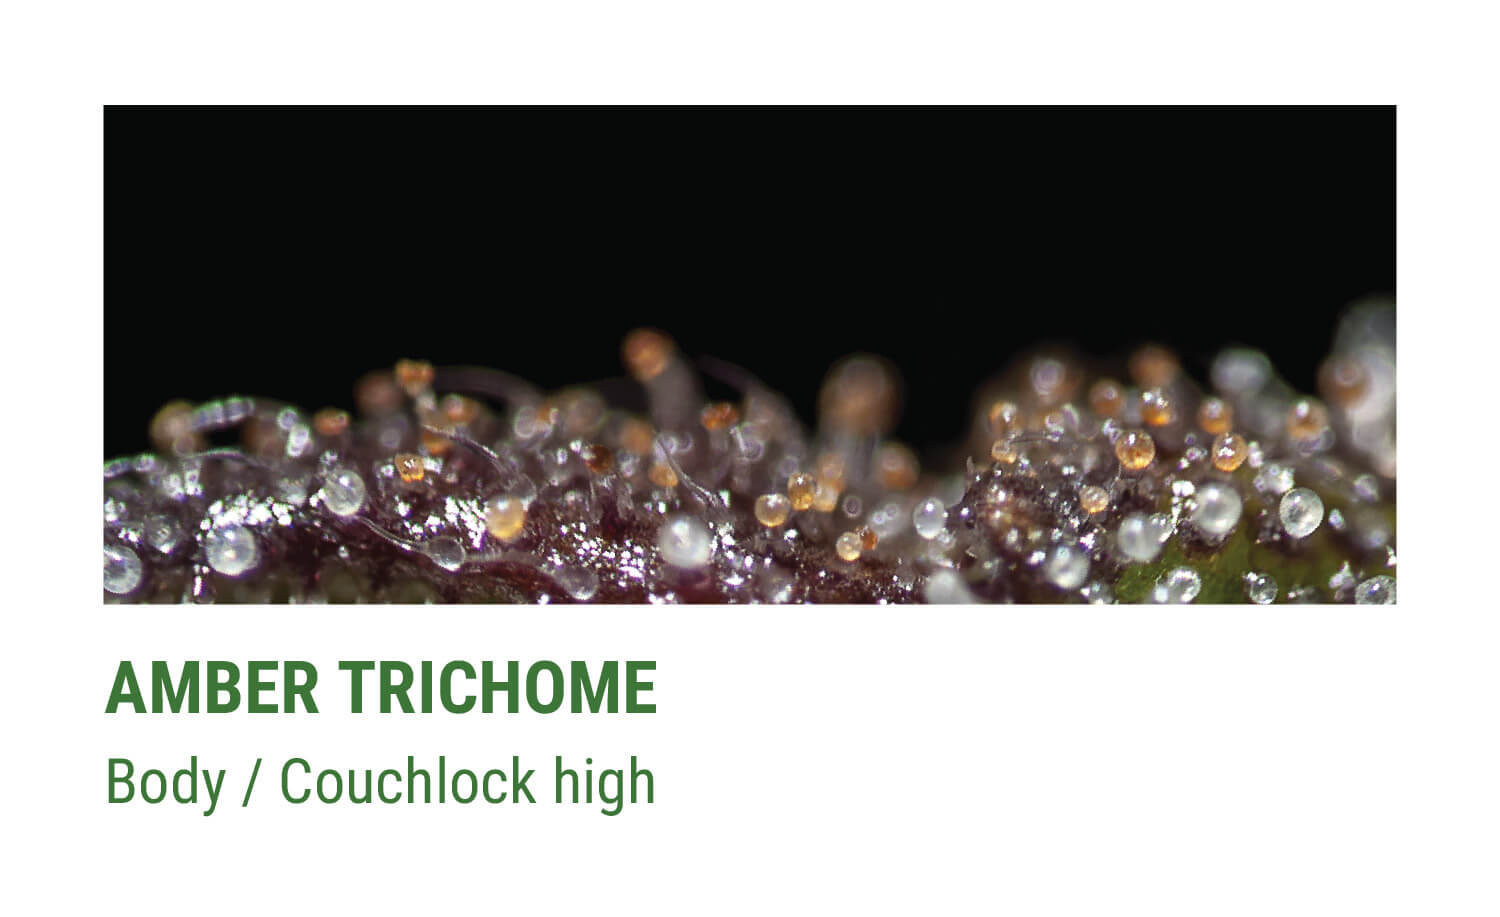 AMBER TRICHOMES